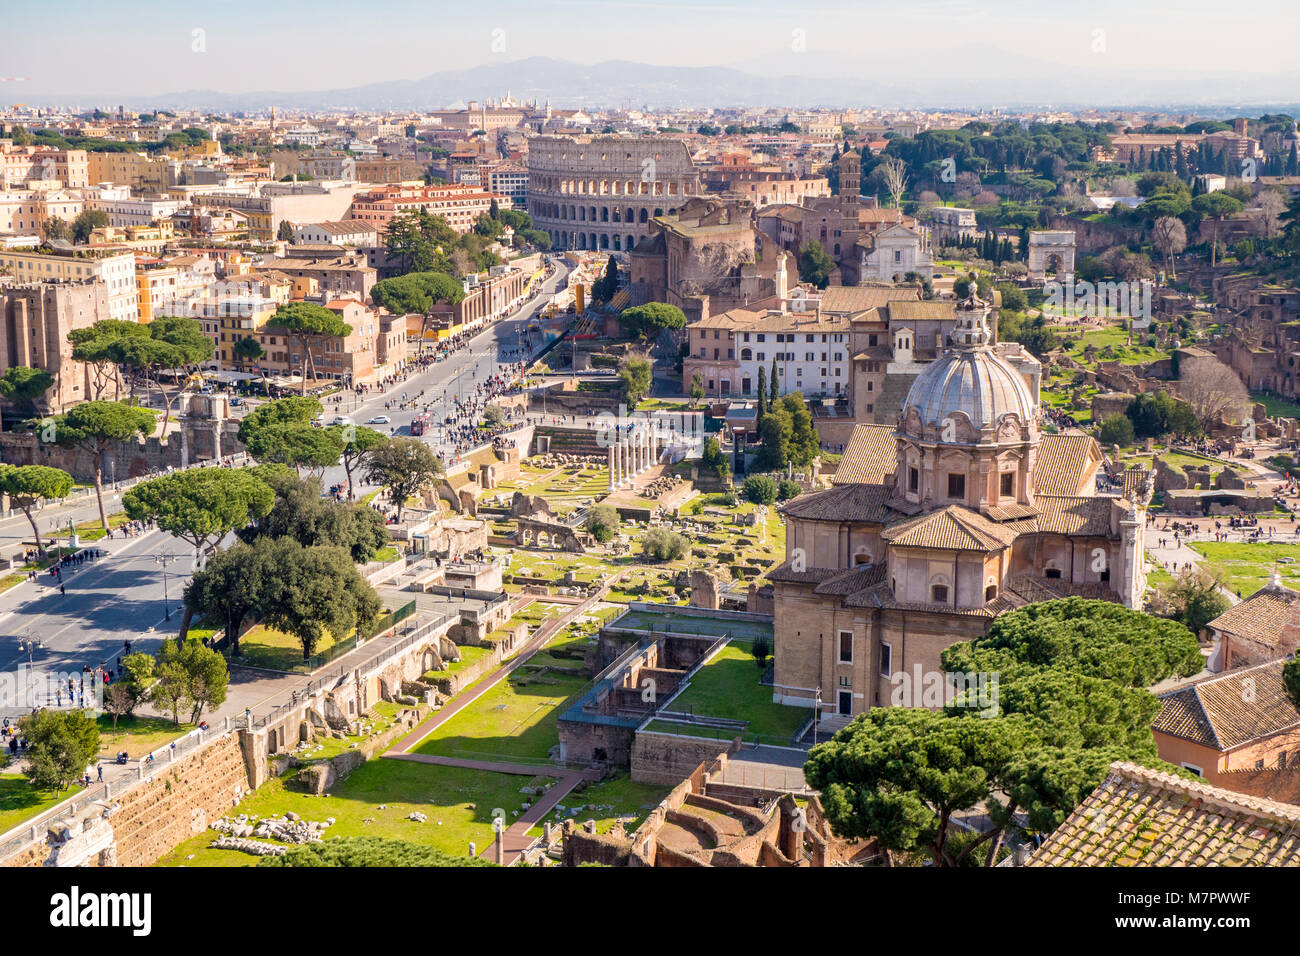 Rome from above aerial view of the Roman Forum - Stock Image